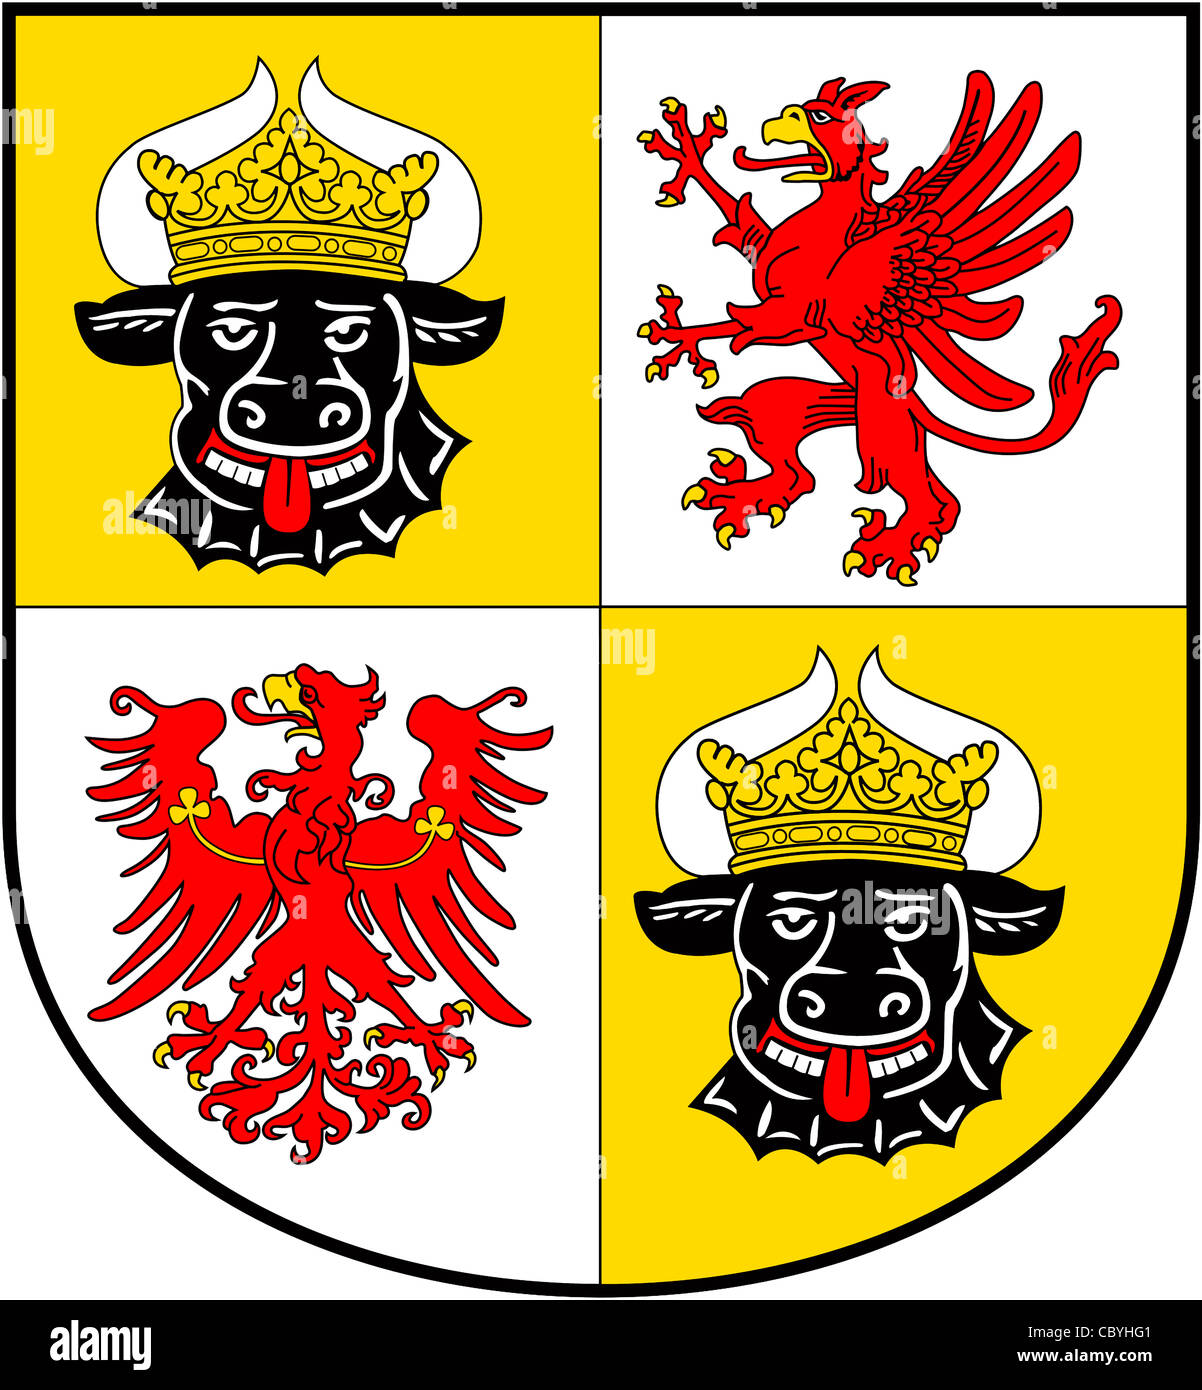 Coat of arms of the German federal state Mecklenburg-Western Pomerania. - Stock Image